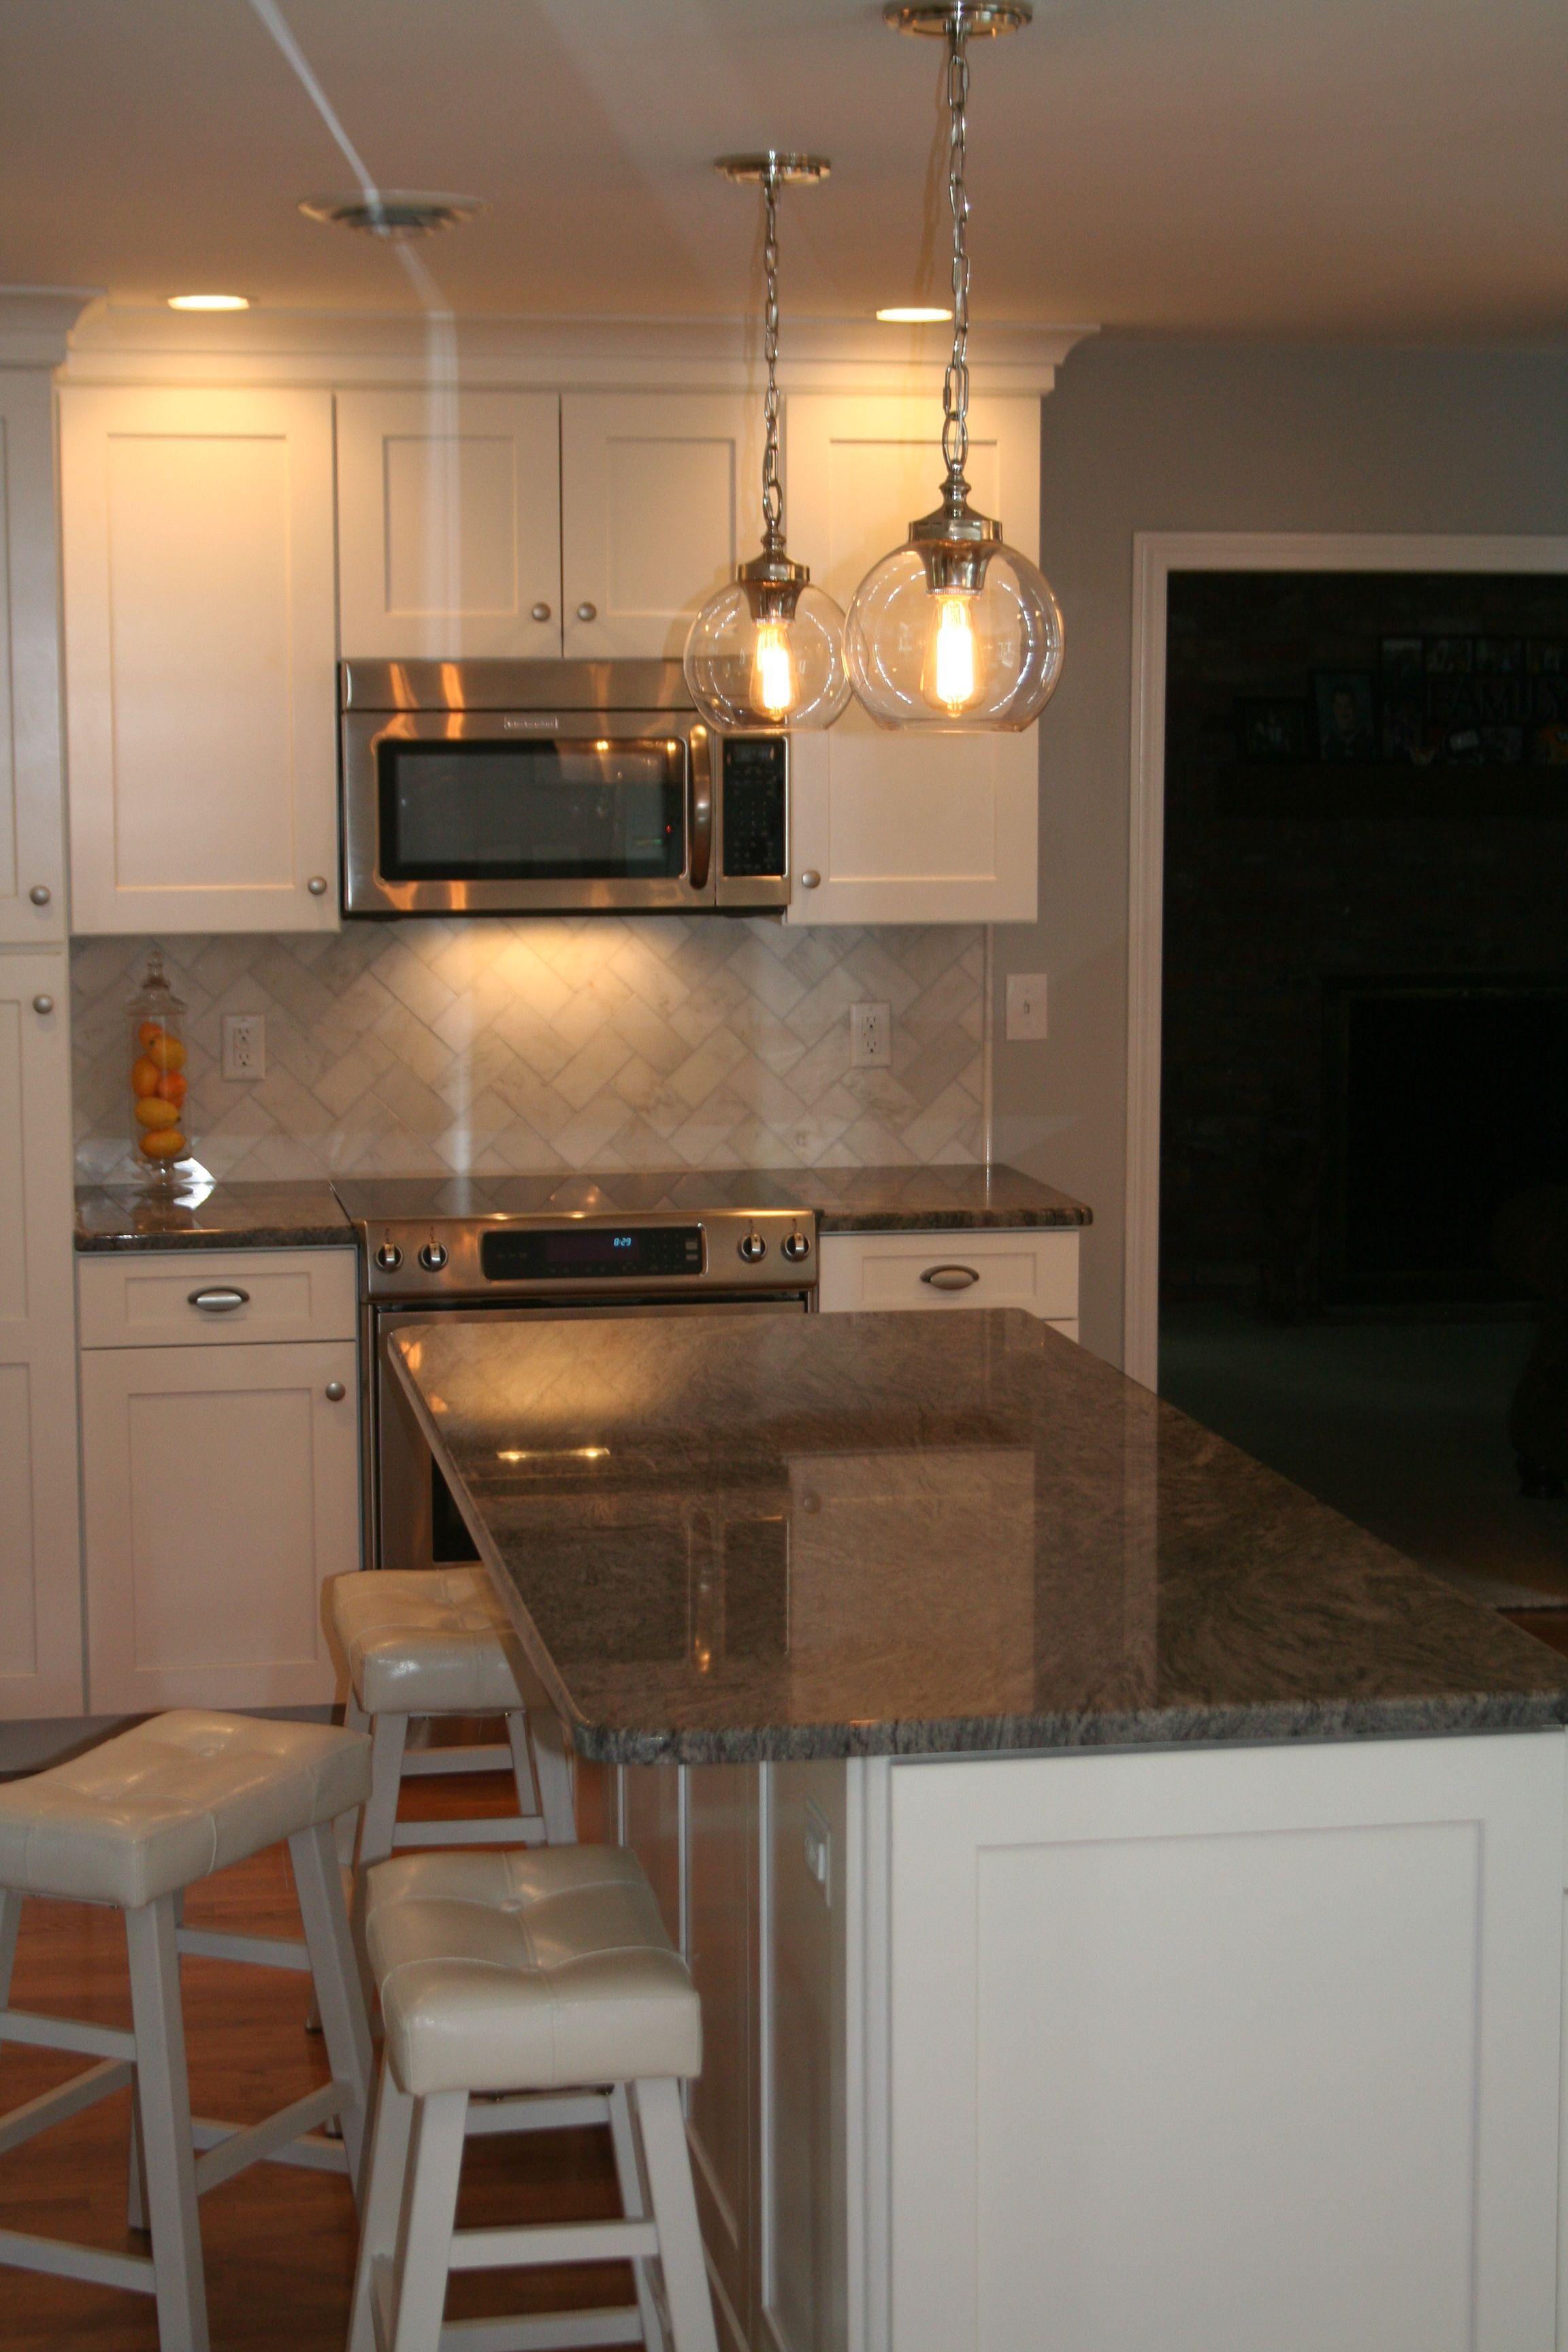 Pin On Cypress Design Co Rhode Island Kitchen Projects Rhodeislandkitchens